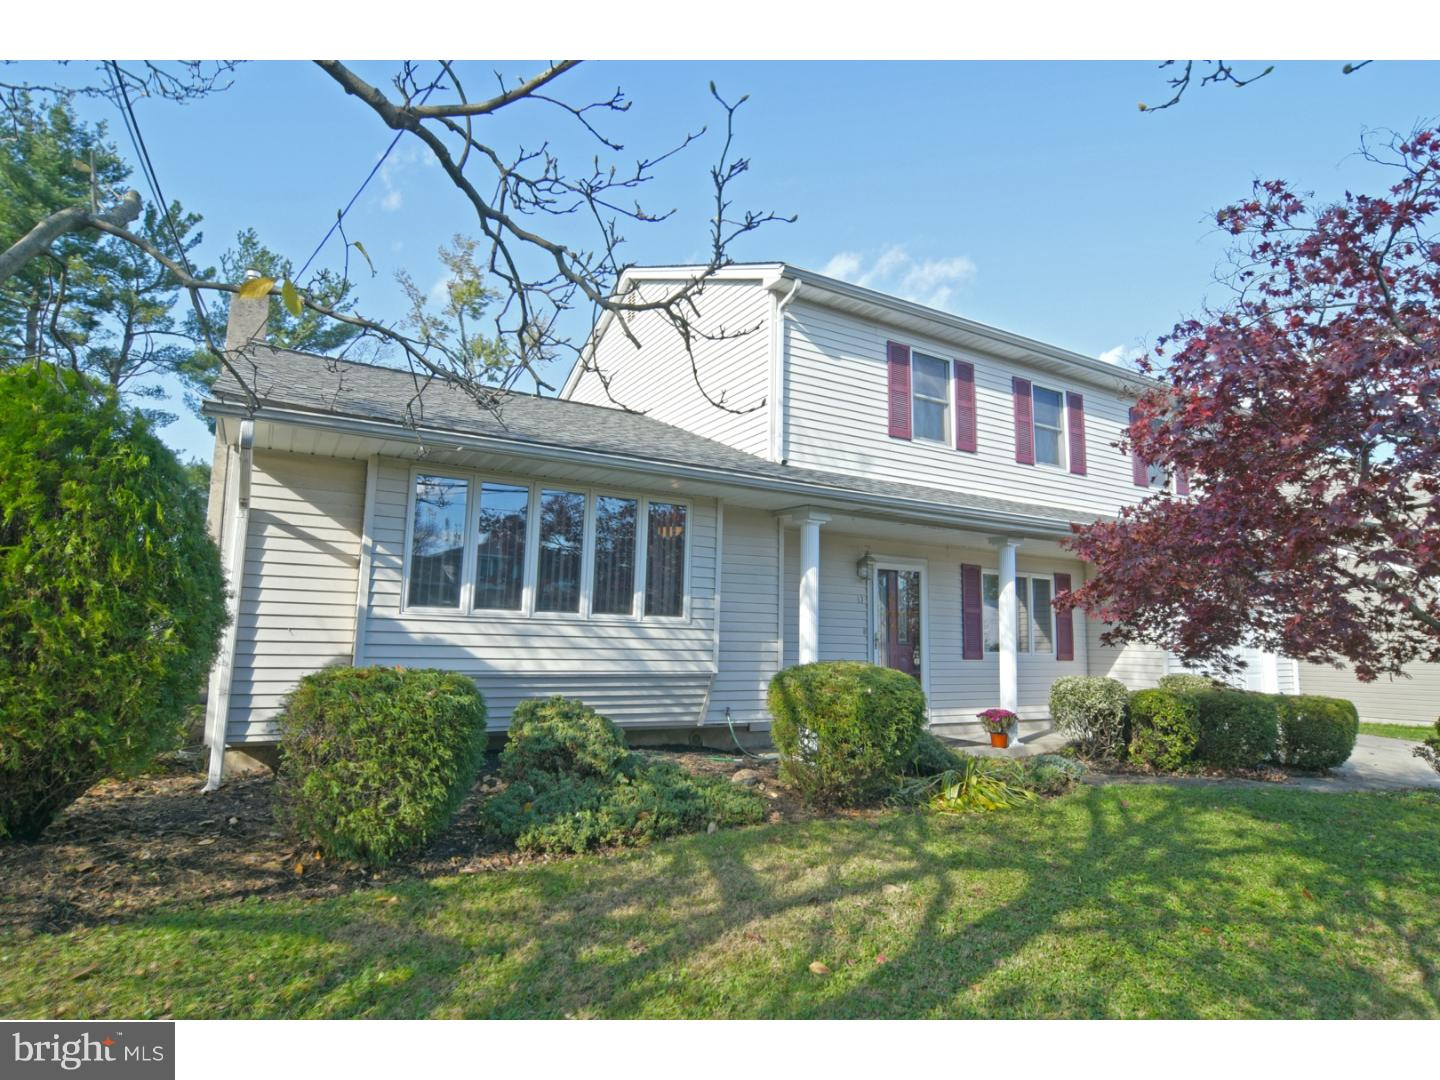 Single Family Home for Sale at 13 HURON WAY Lawrence, New Jersey 08648 United StatesMunicipality: Lawrence Township